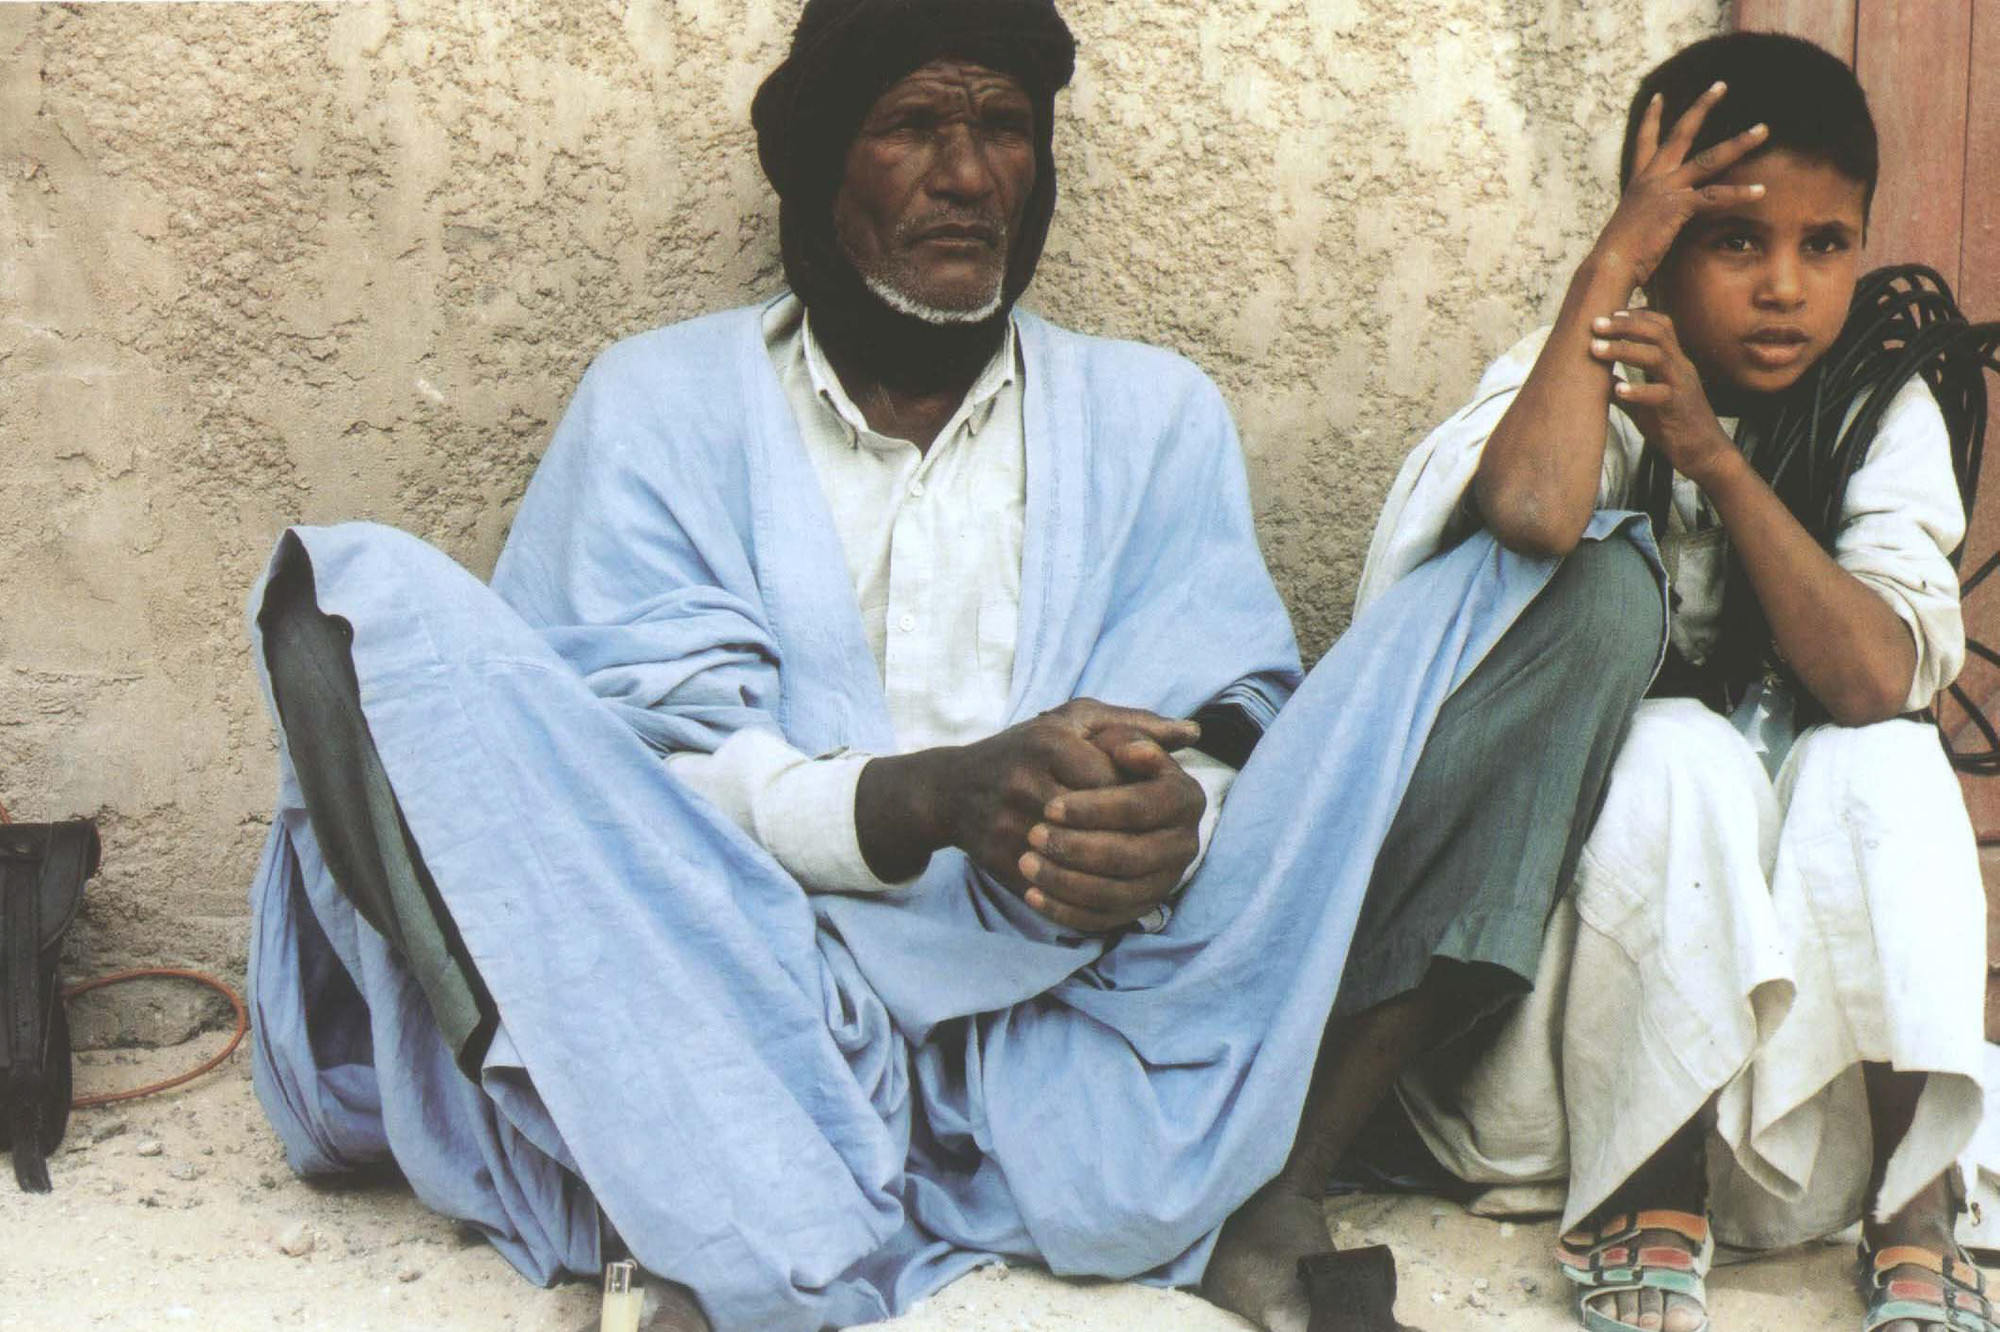 Heremakono (Waiting for Happiness). 2002. France/Mauritania. Written and directed by Abderrahmane Sissako. Courtesy of New Yorker Films/Photofest. © New Yorker Films